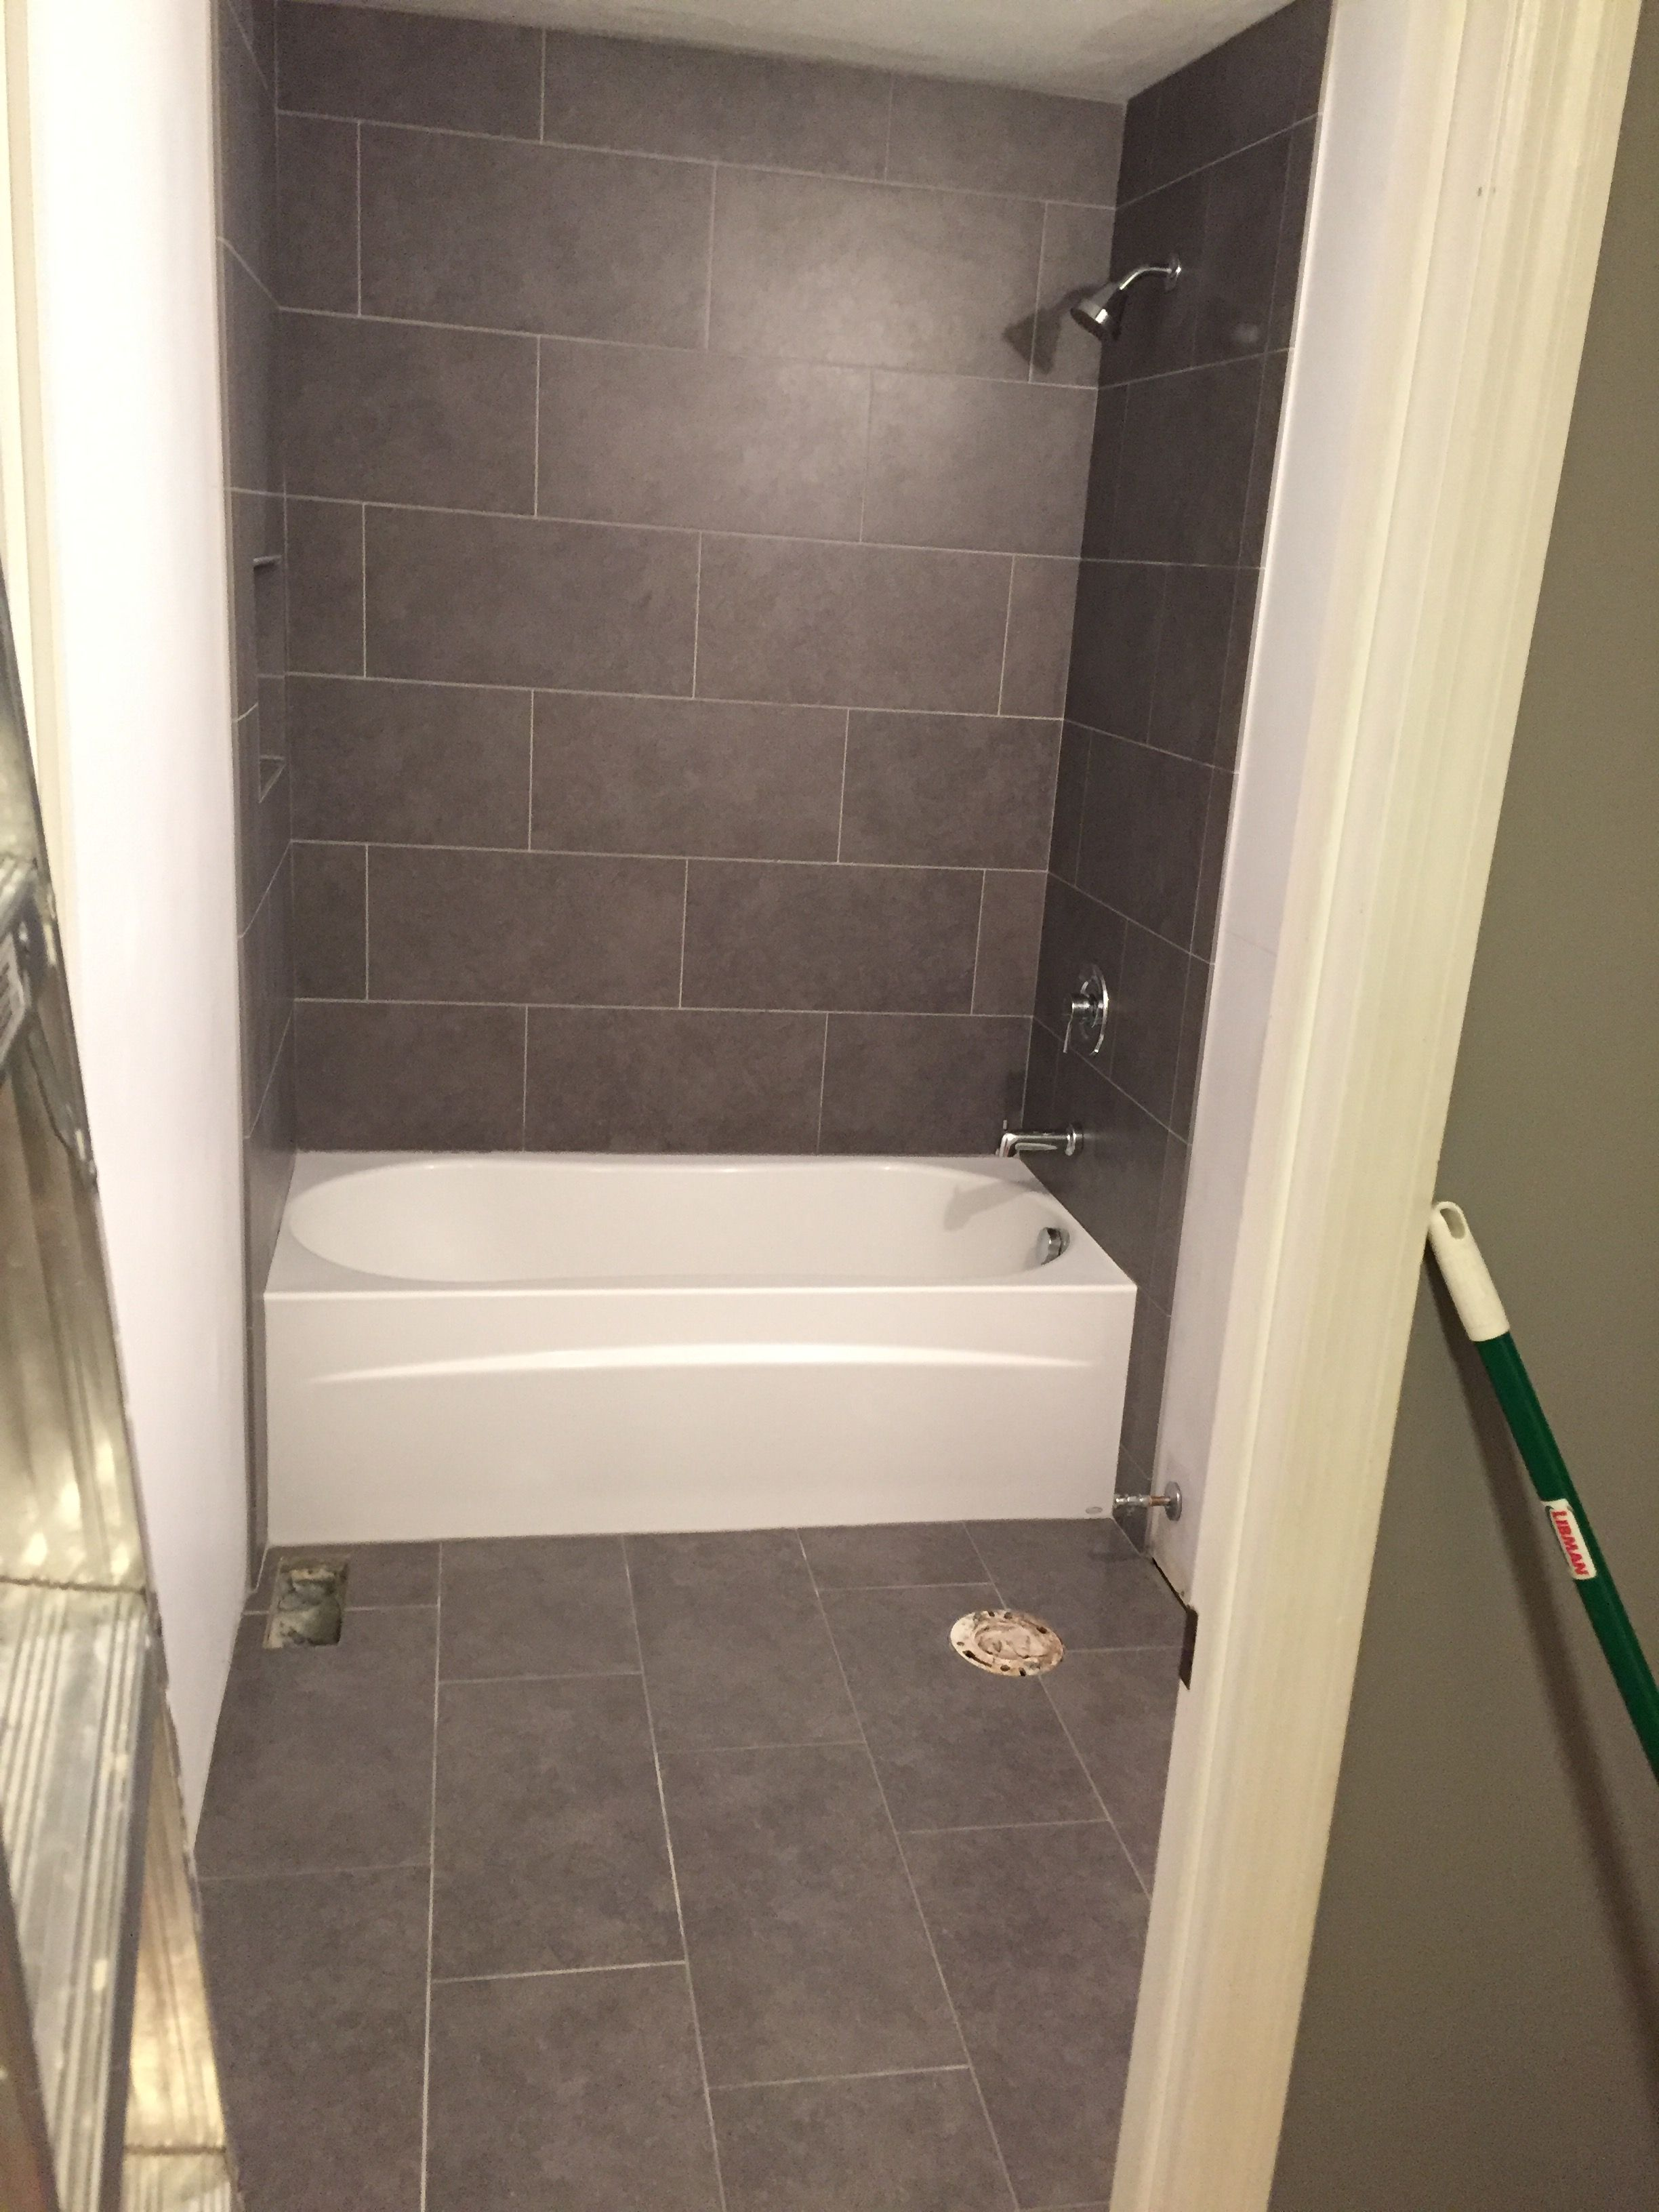 Lowe S Mitte Gray Tile 12x24 Bathroom Tub Surround And Floors Bath